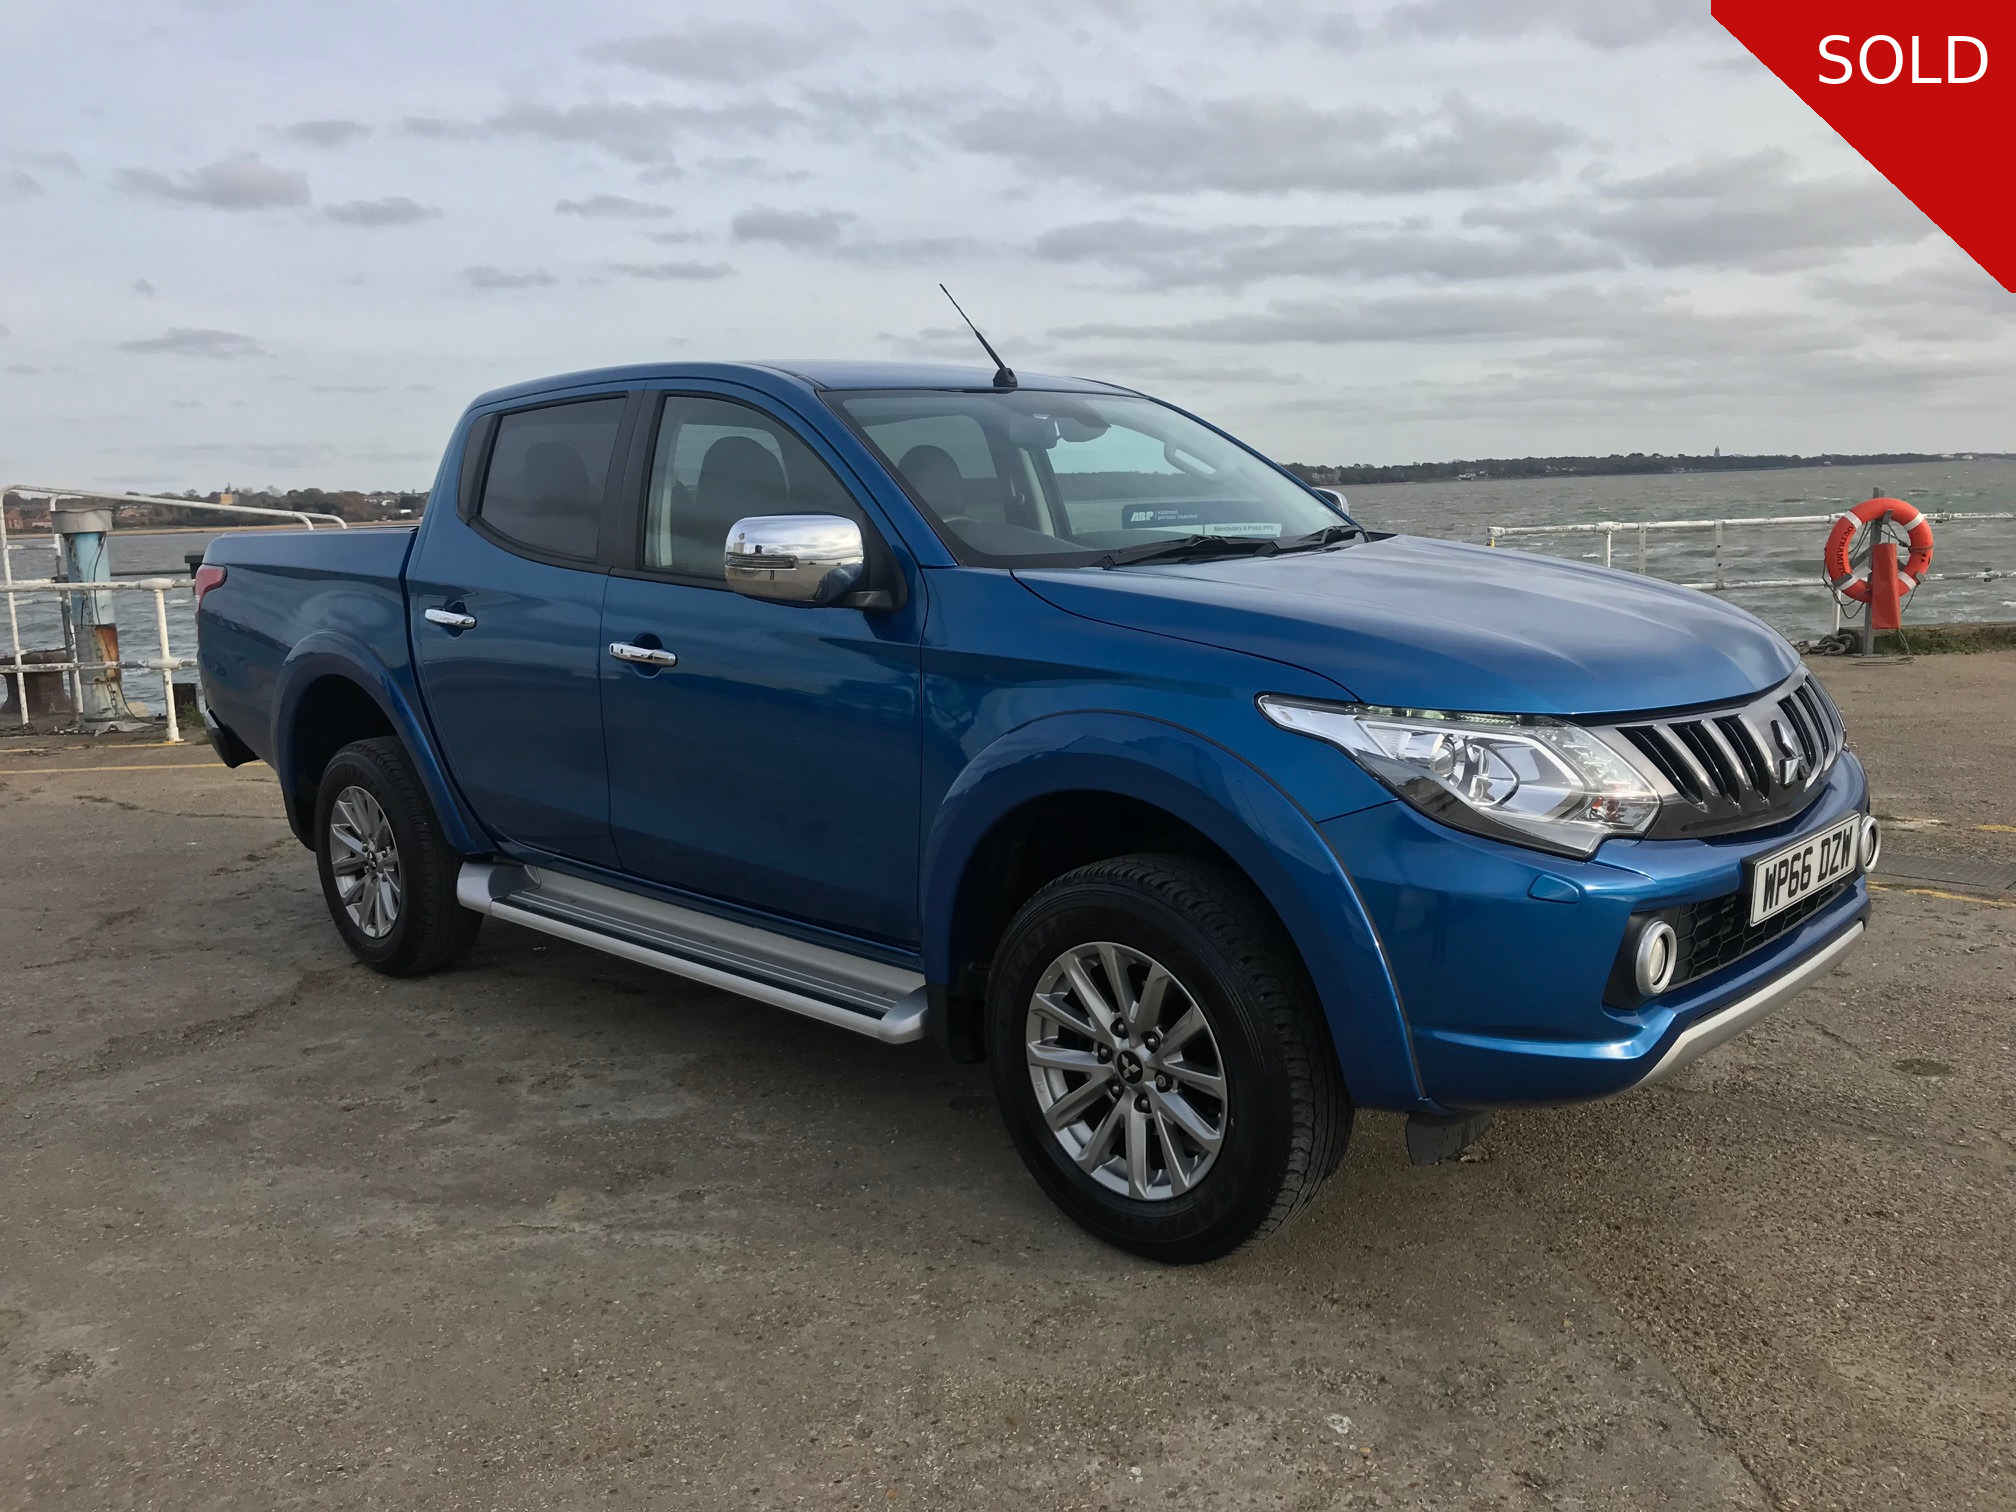 2017 Mitsubishi L200 Double Cab Pick Up Warrior Automatic 4x4 - SOLD